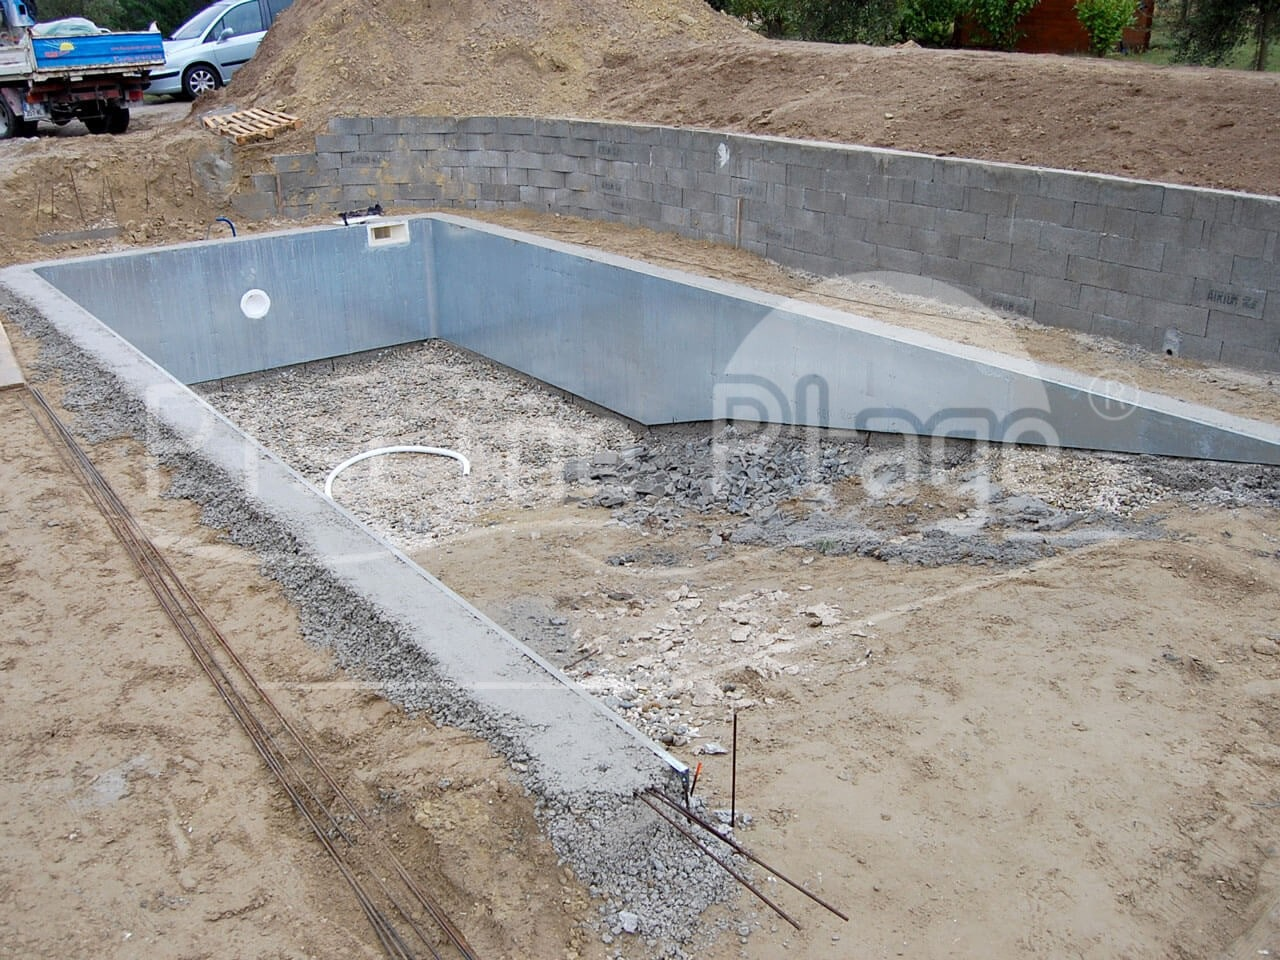 Notre technique de construction piscine plage for Construction de piscine 30